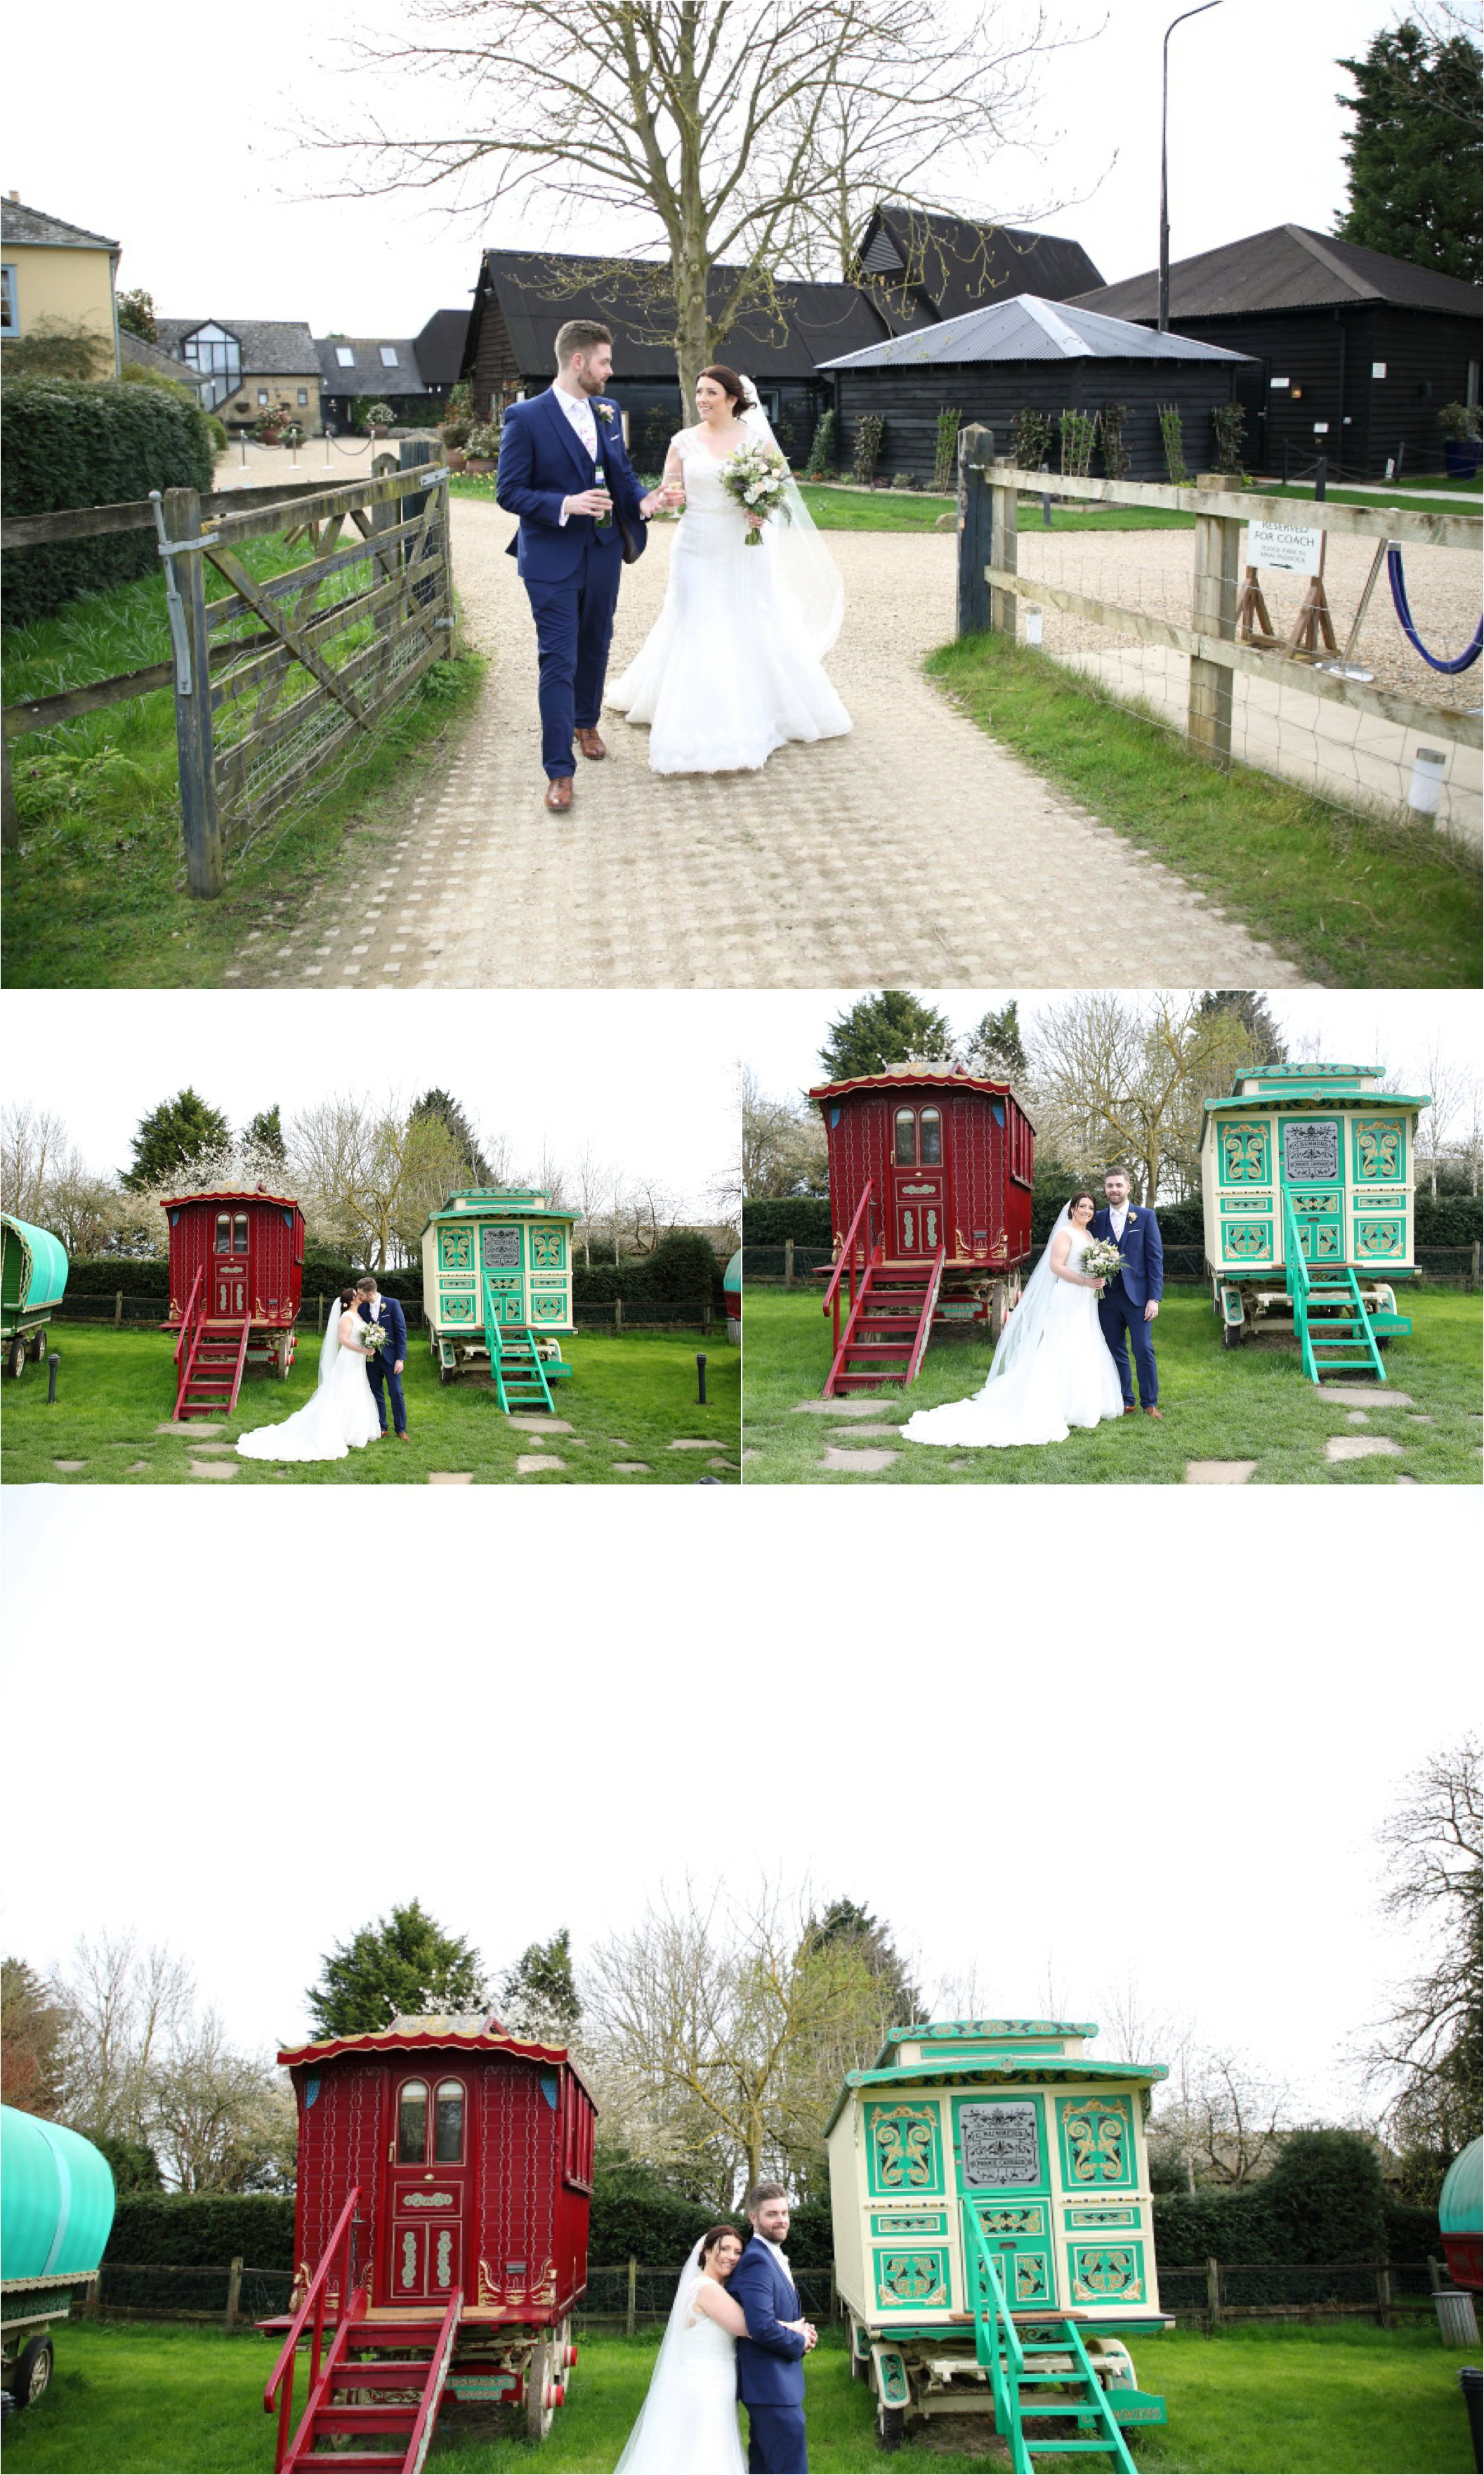 south farm wedding photography, vintage gypsy caravans